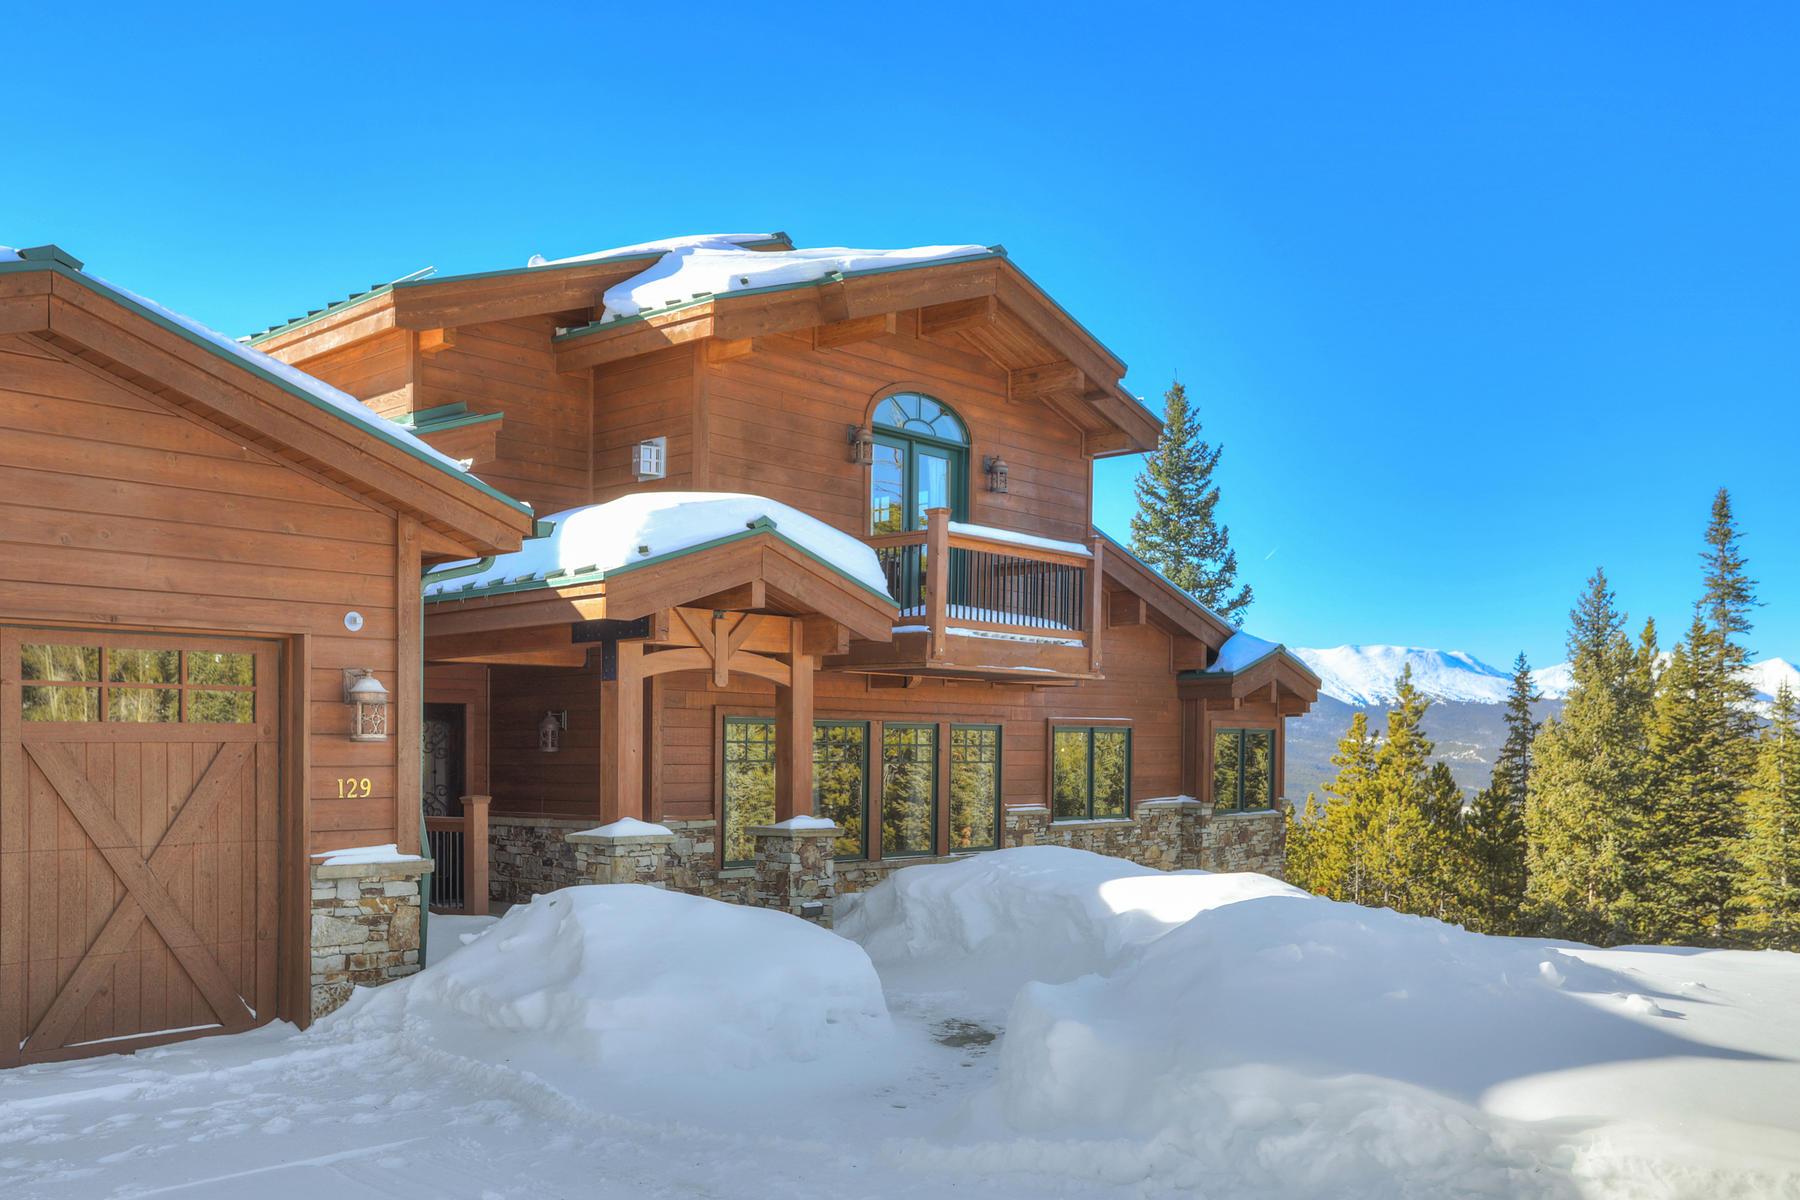 Single Family Homes for Active at Custom Luxury Log Home 129 Club House Road Breckenridge, Colorado 80424 United States